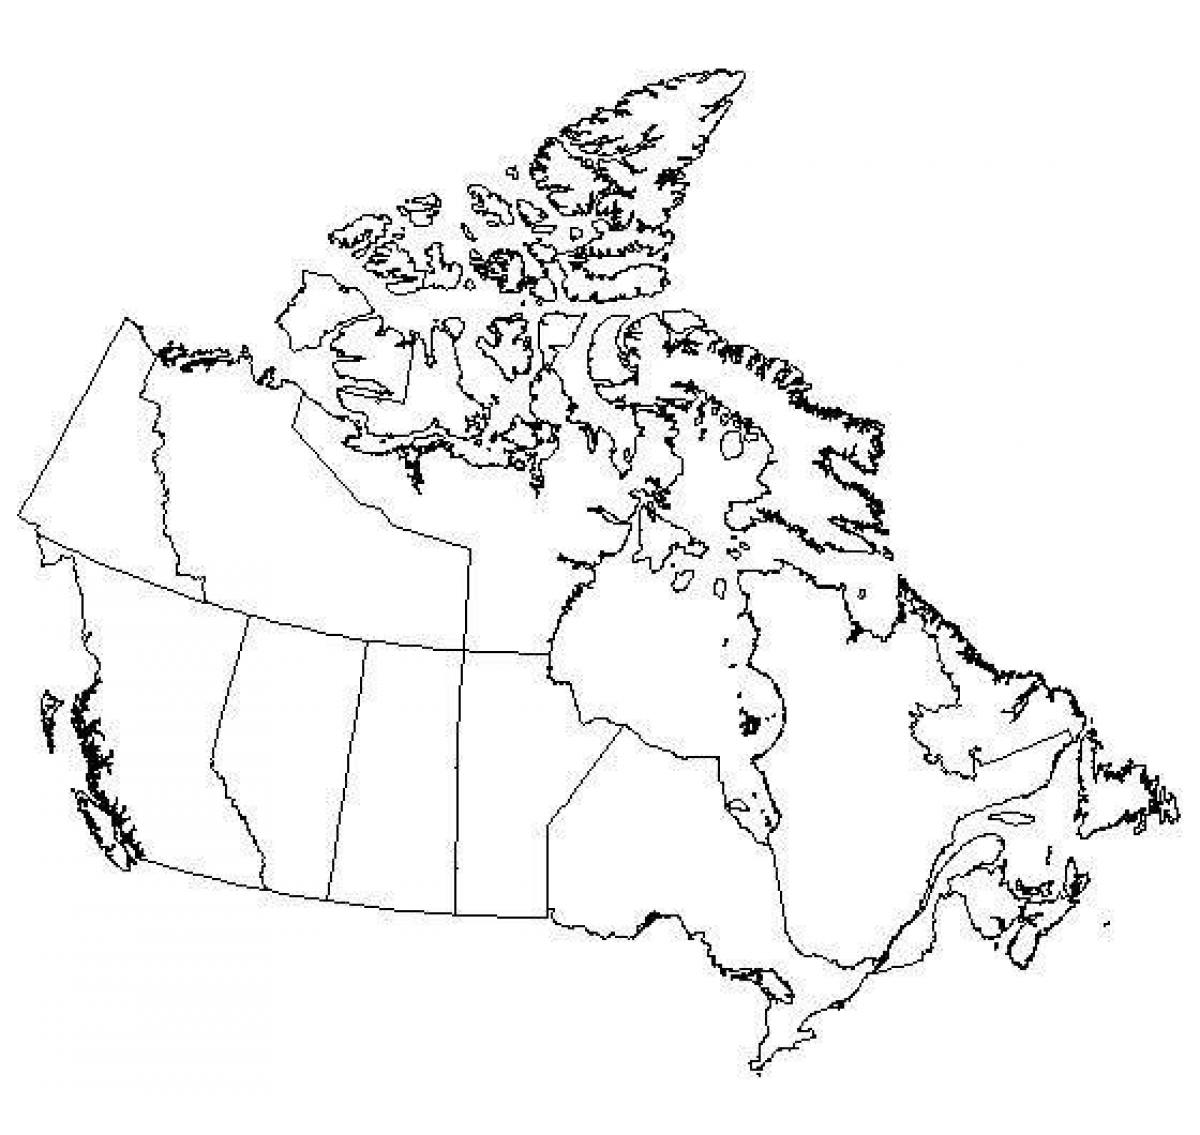 Canada map test - Canada map games (Northern America - Americas) on